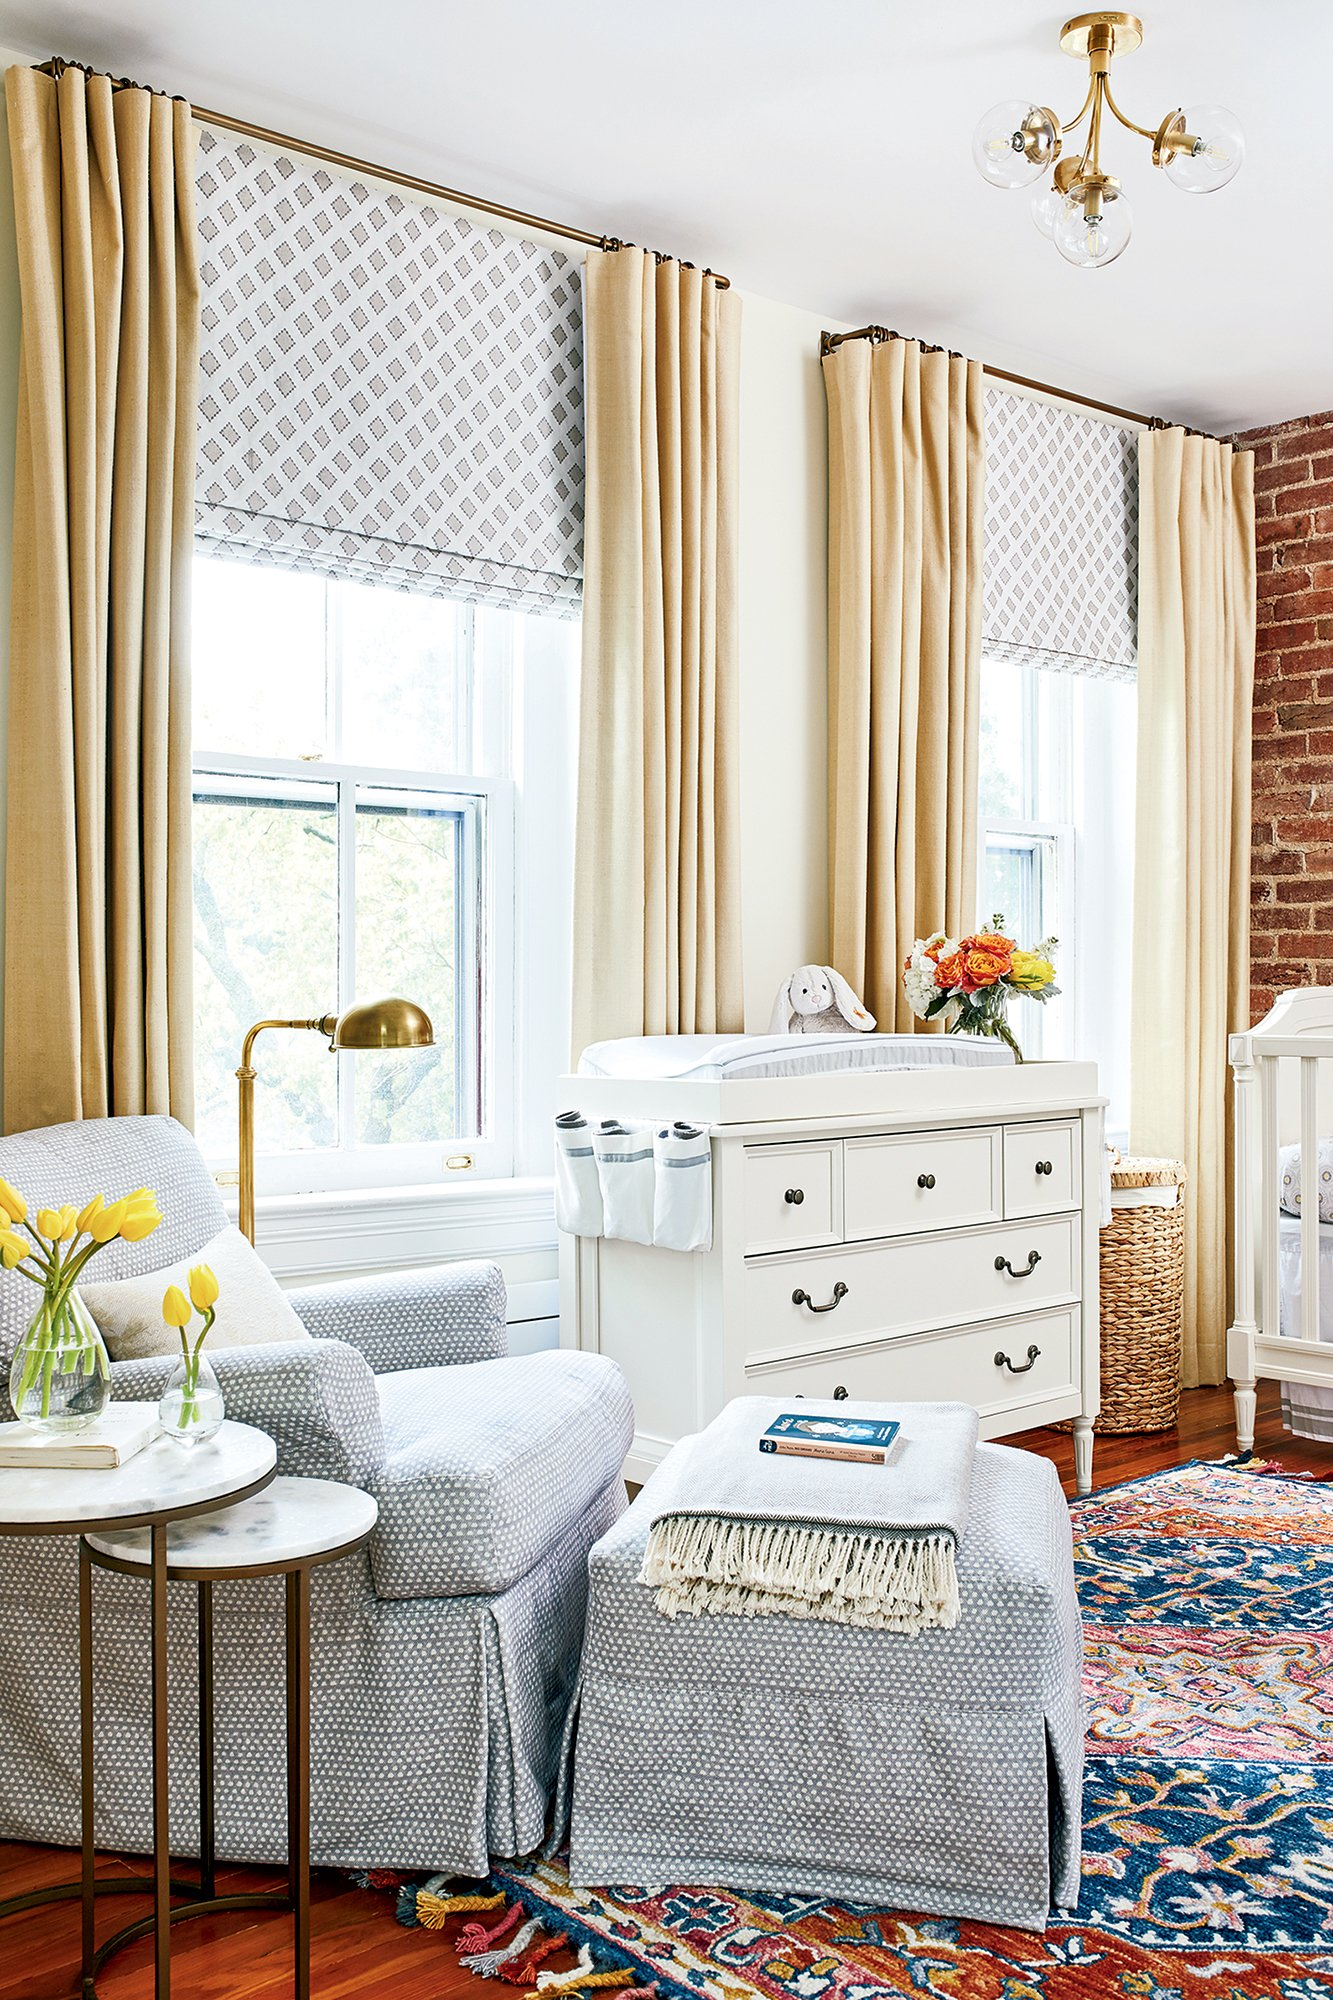 The old master bathroom became this soothing nursery, done up in tans and grays, with a jolt of color from the area rug by Zola. Photograph by Stacy Zarin Goldberg.